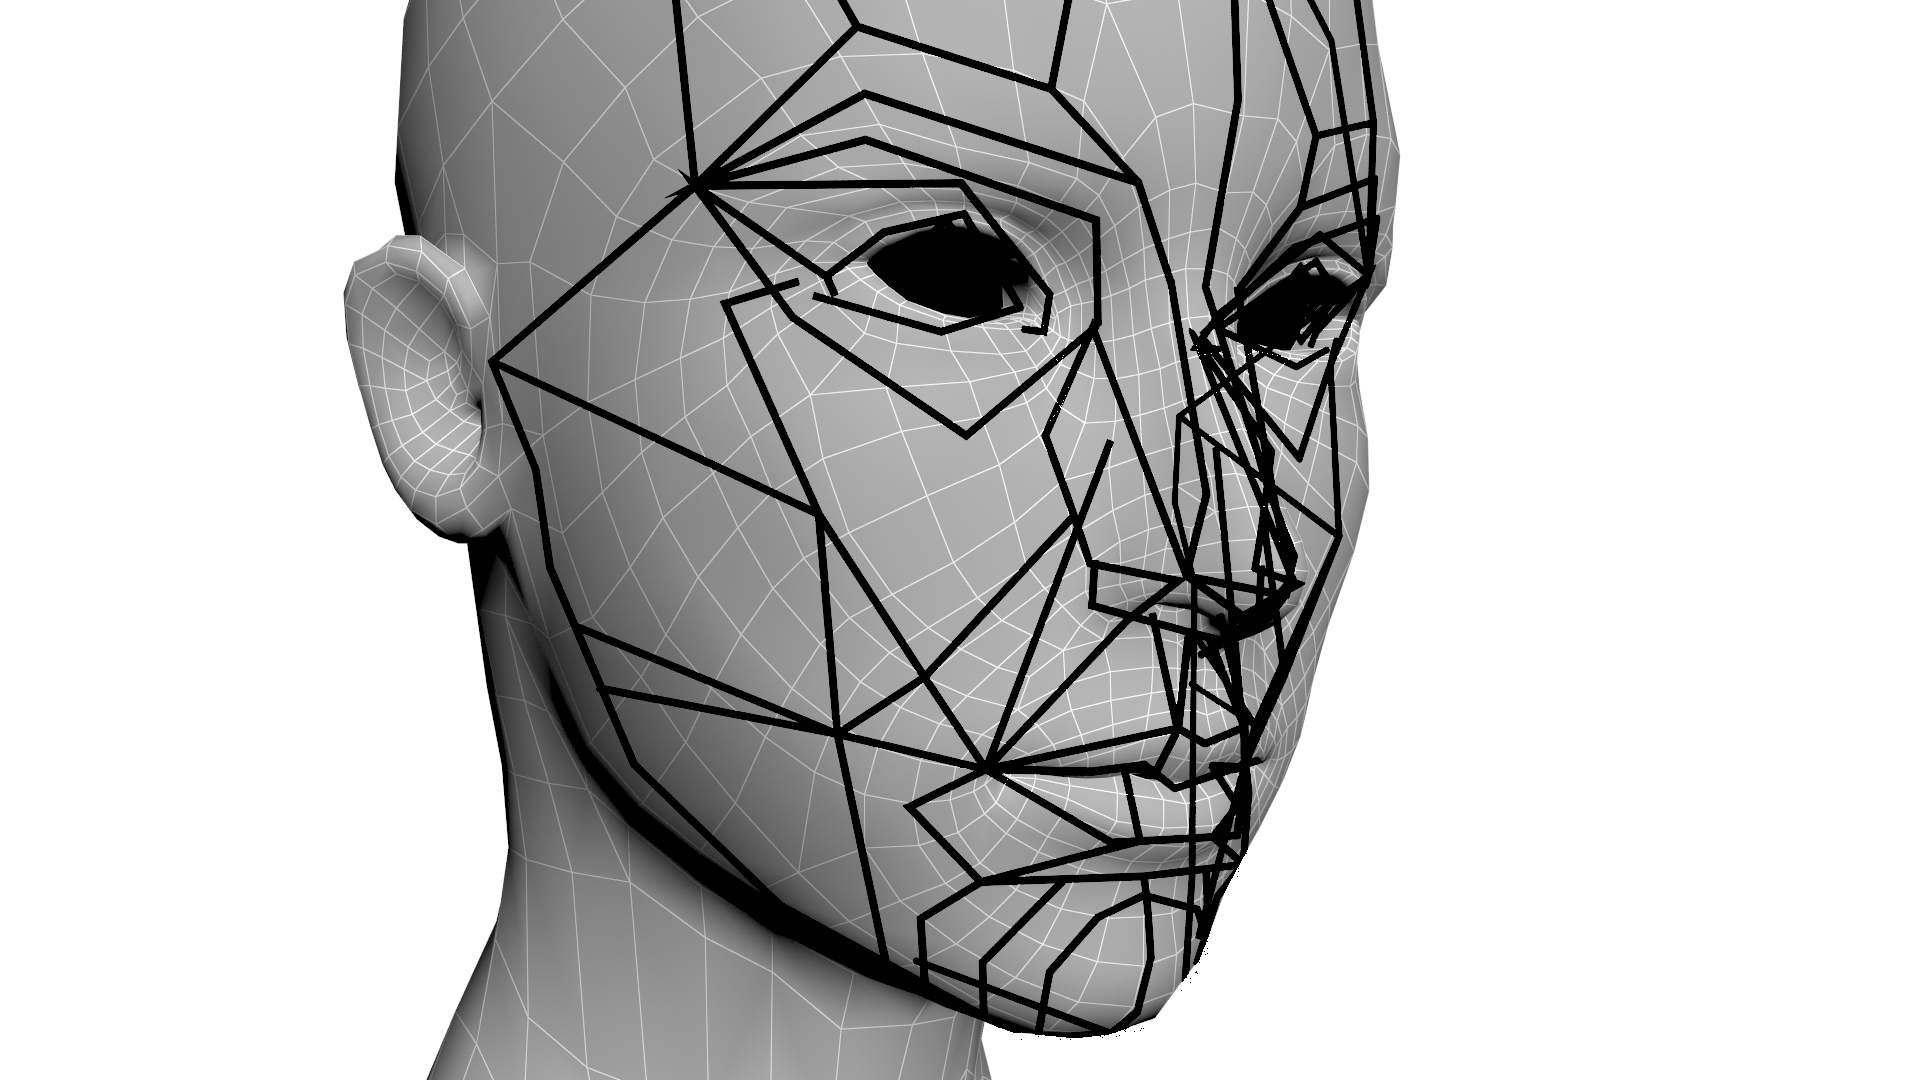 The golden ratio in 3d human face modeling valentin schwind figure ccuart Image collections